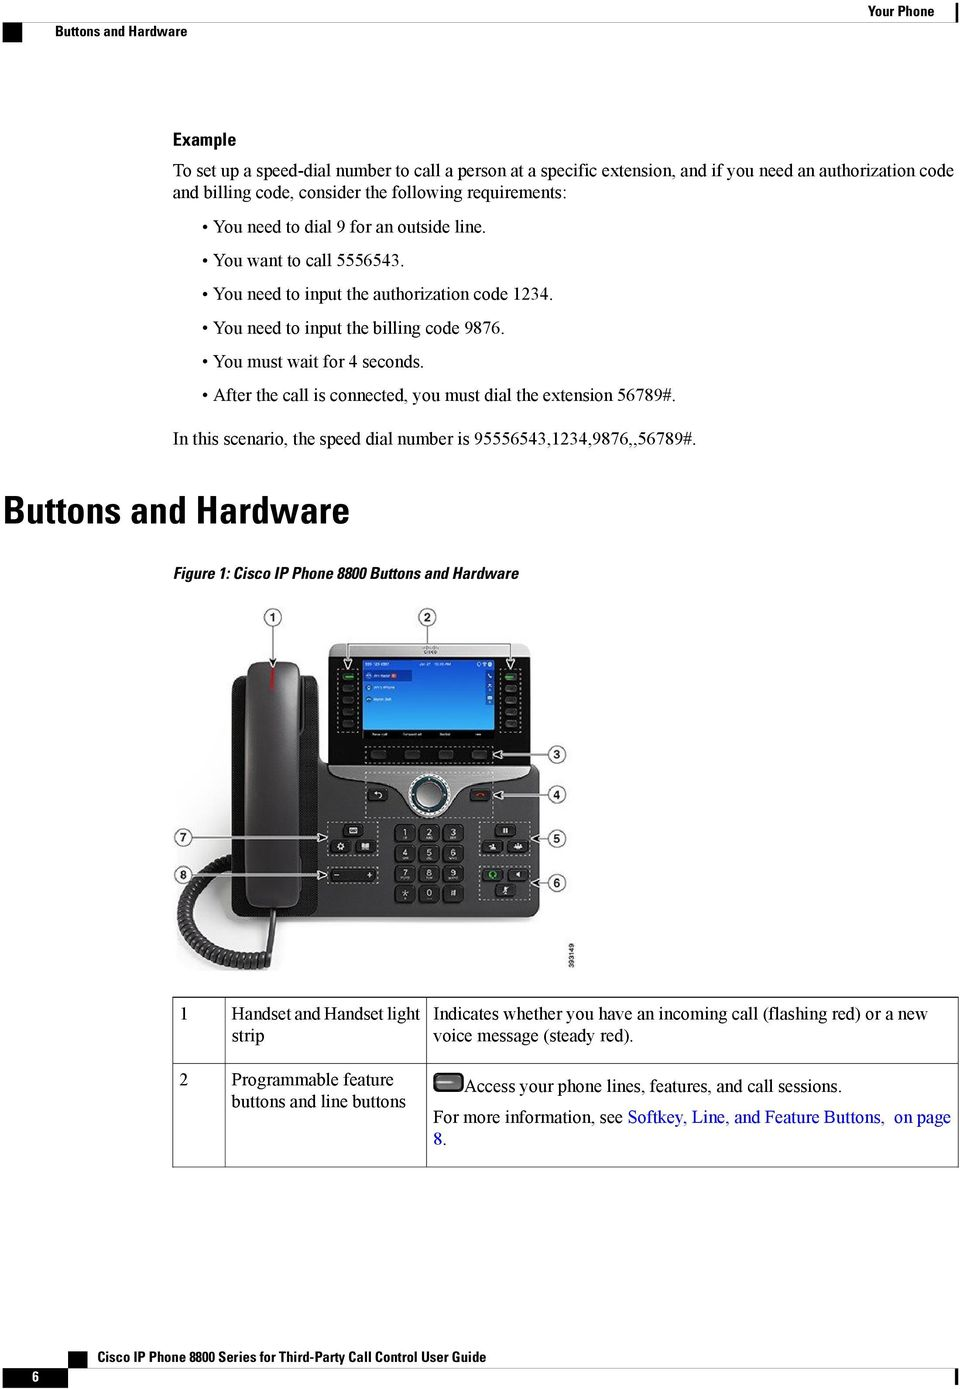 Cisco IP Phone 8800 Series for Third-Party Call Control User